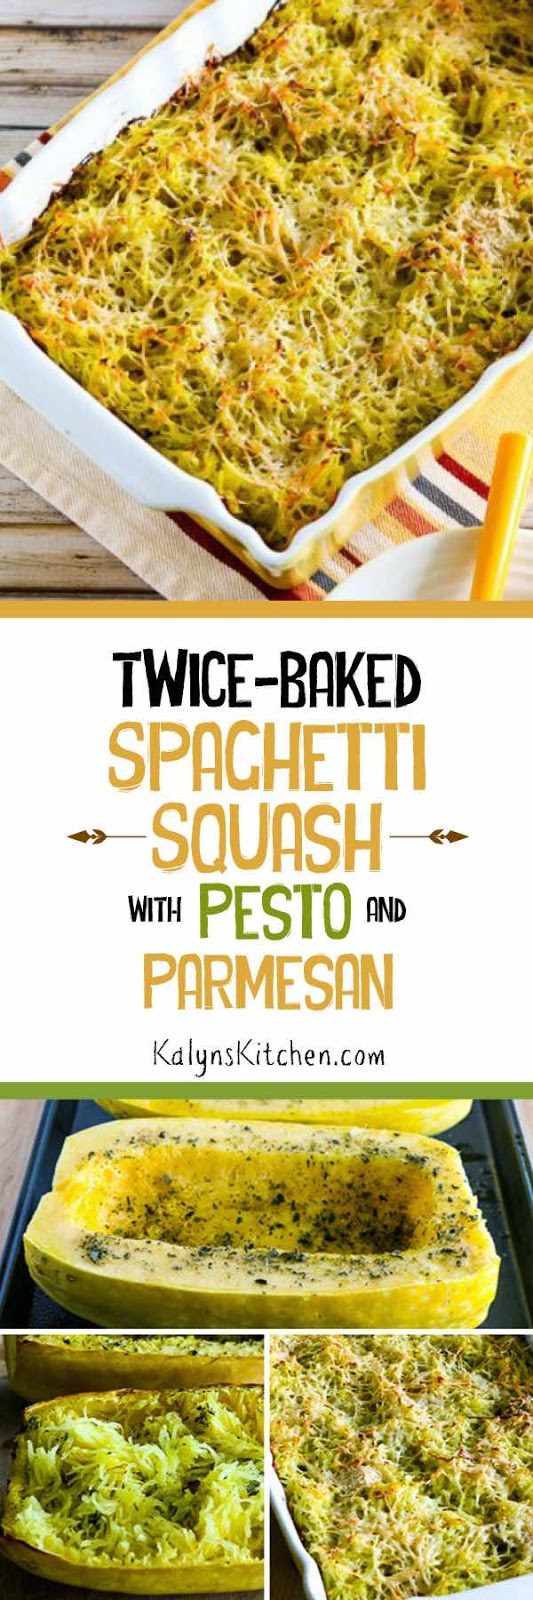 Twice-Baked Spaghetti Squash Recipe with Pesto and Parmesan found on ...